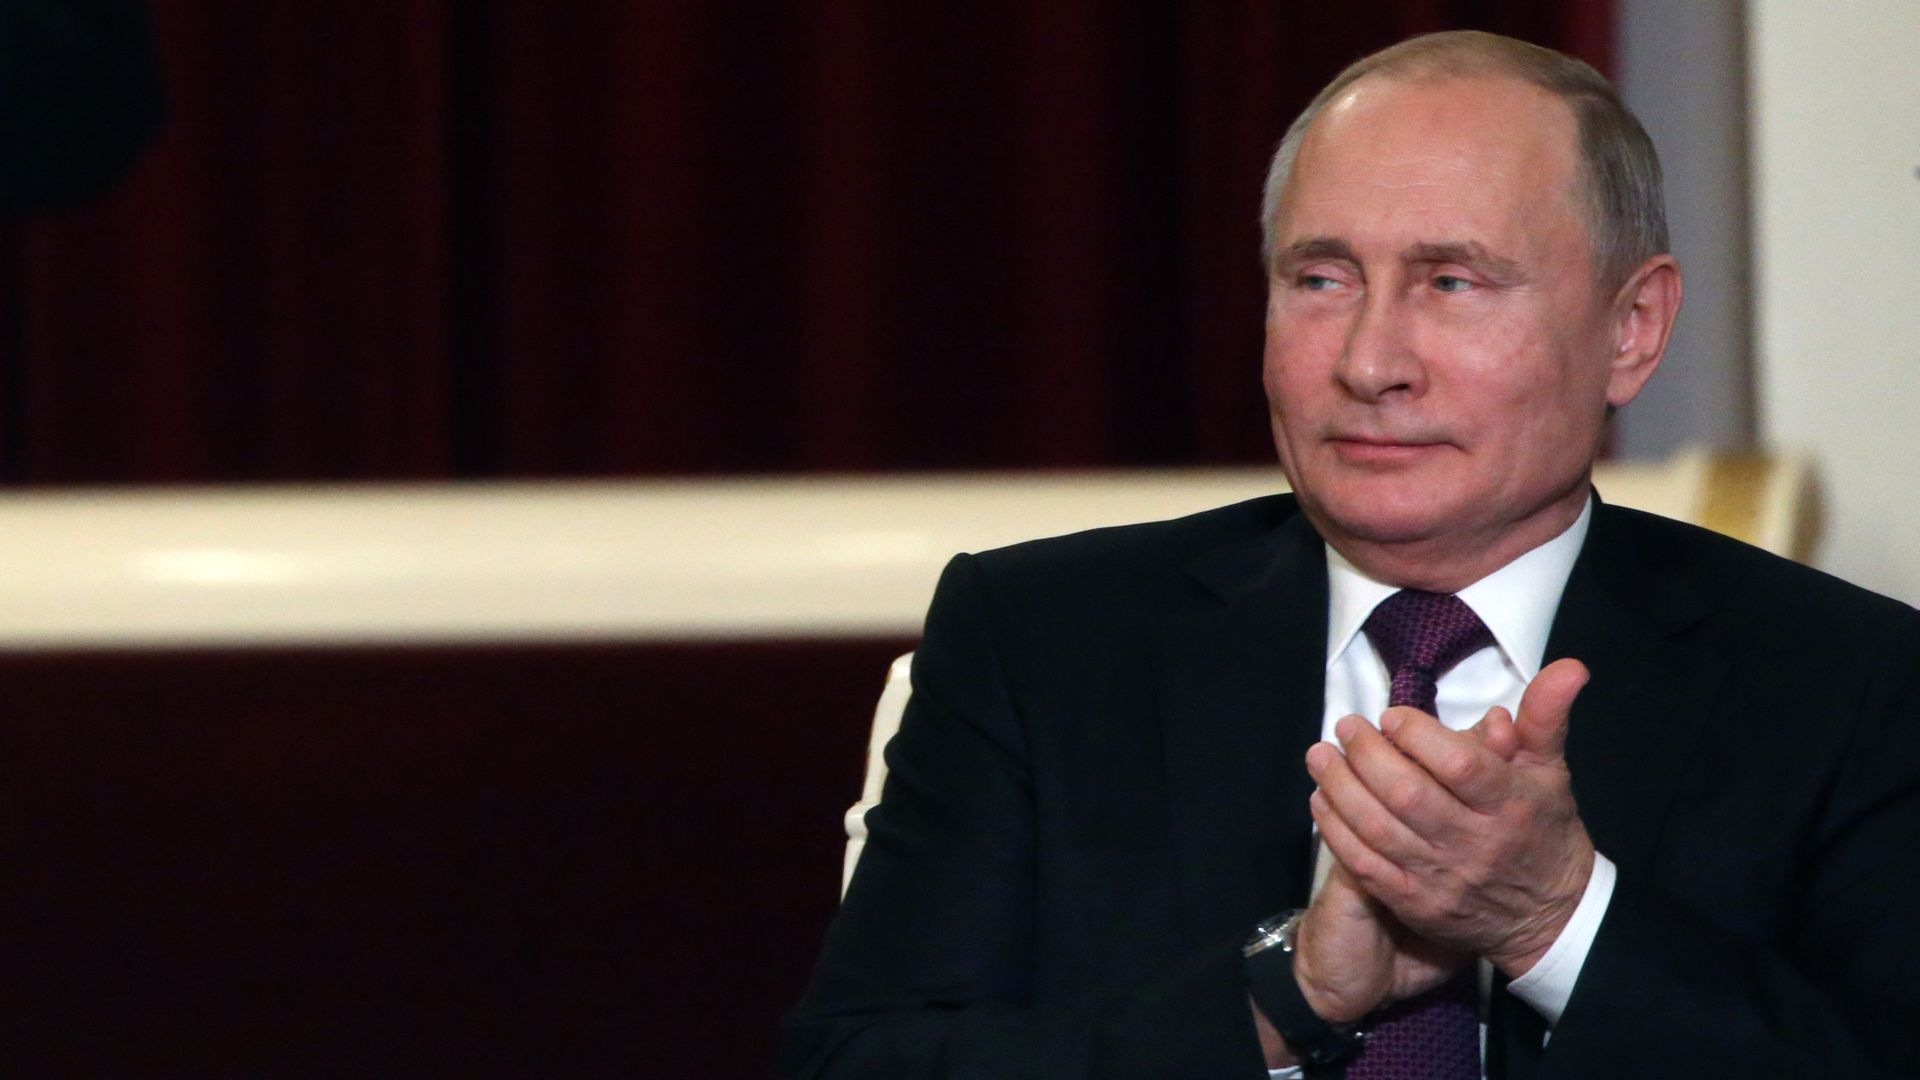 Vladimir Putin (Photo: Mikhail Svetlov/Getty Images)